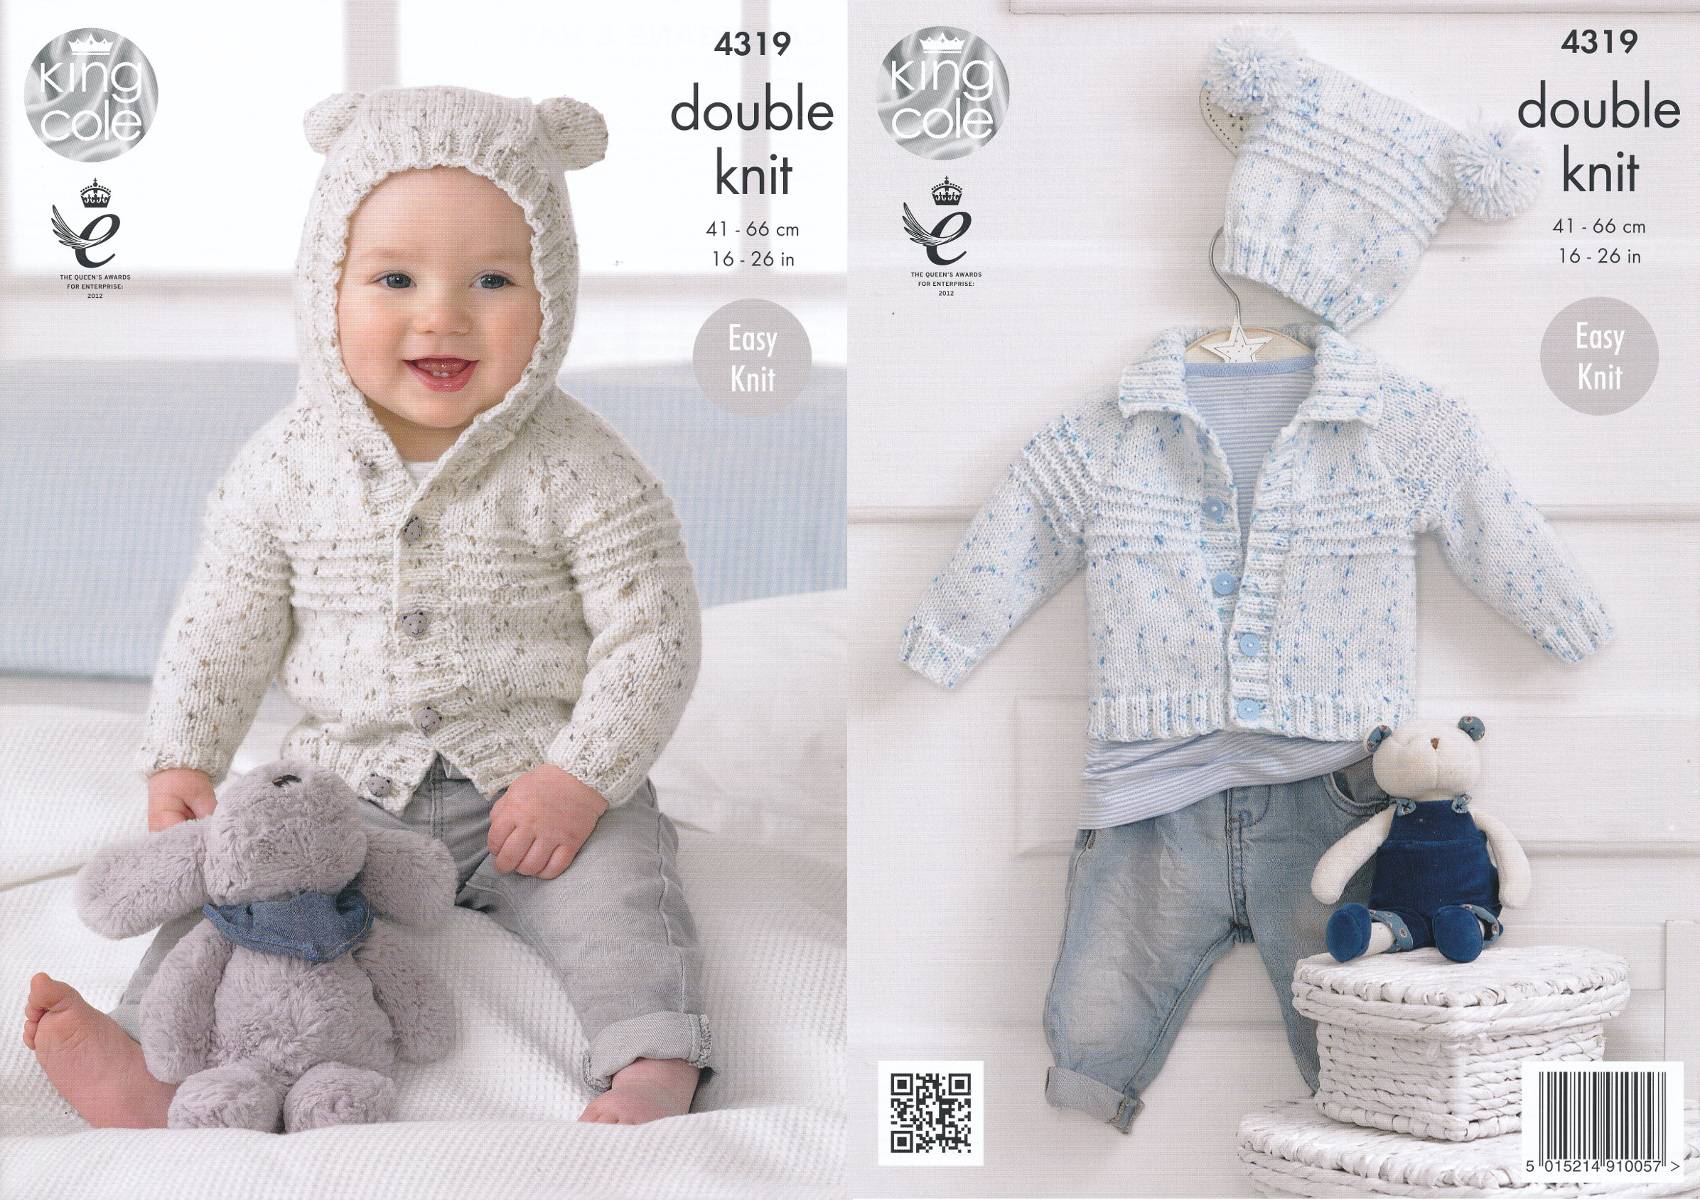 King Cole Double Knitting Pattern Baby Cardigans Hat Easy Knit ...